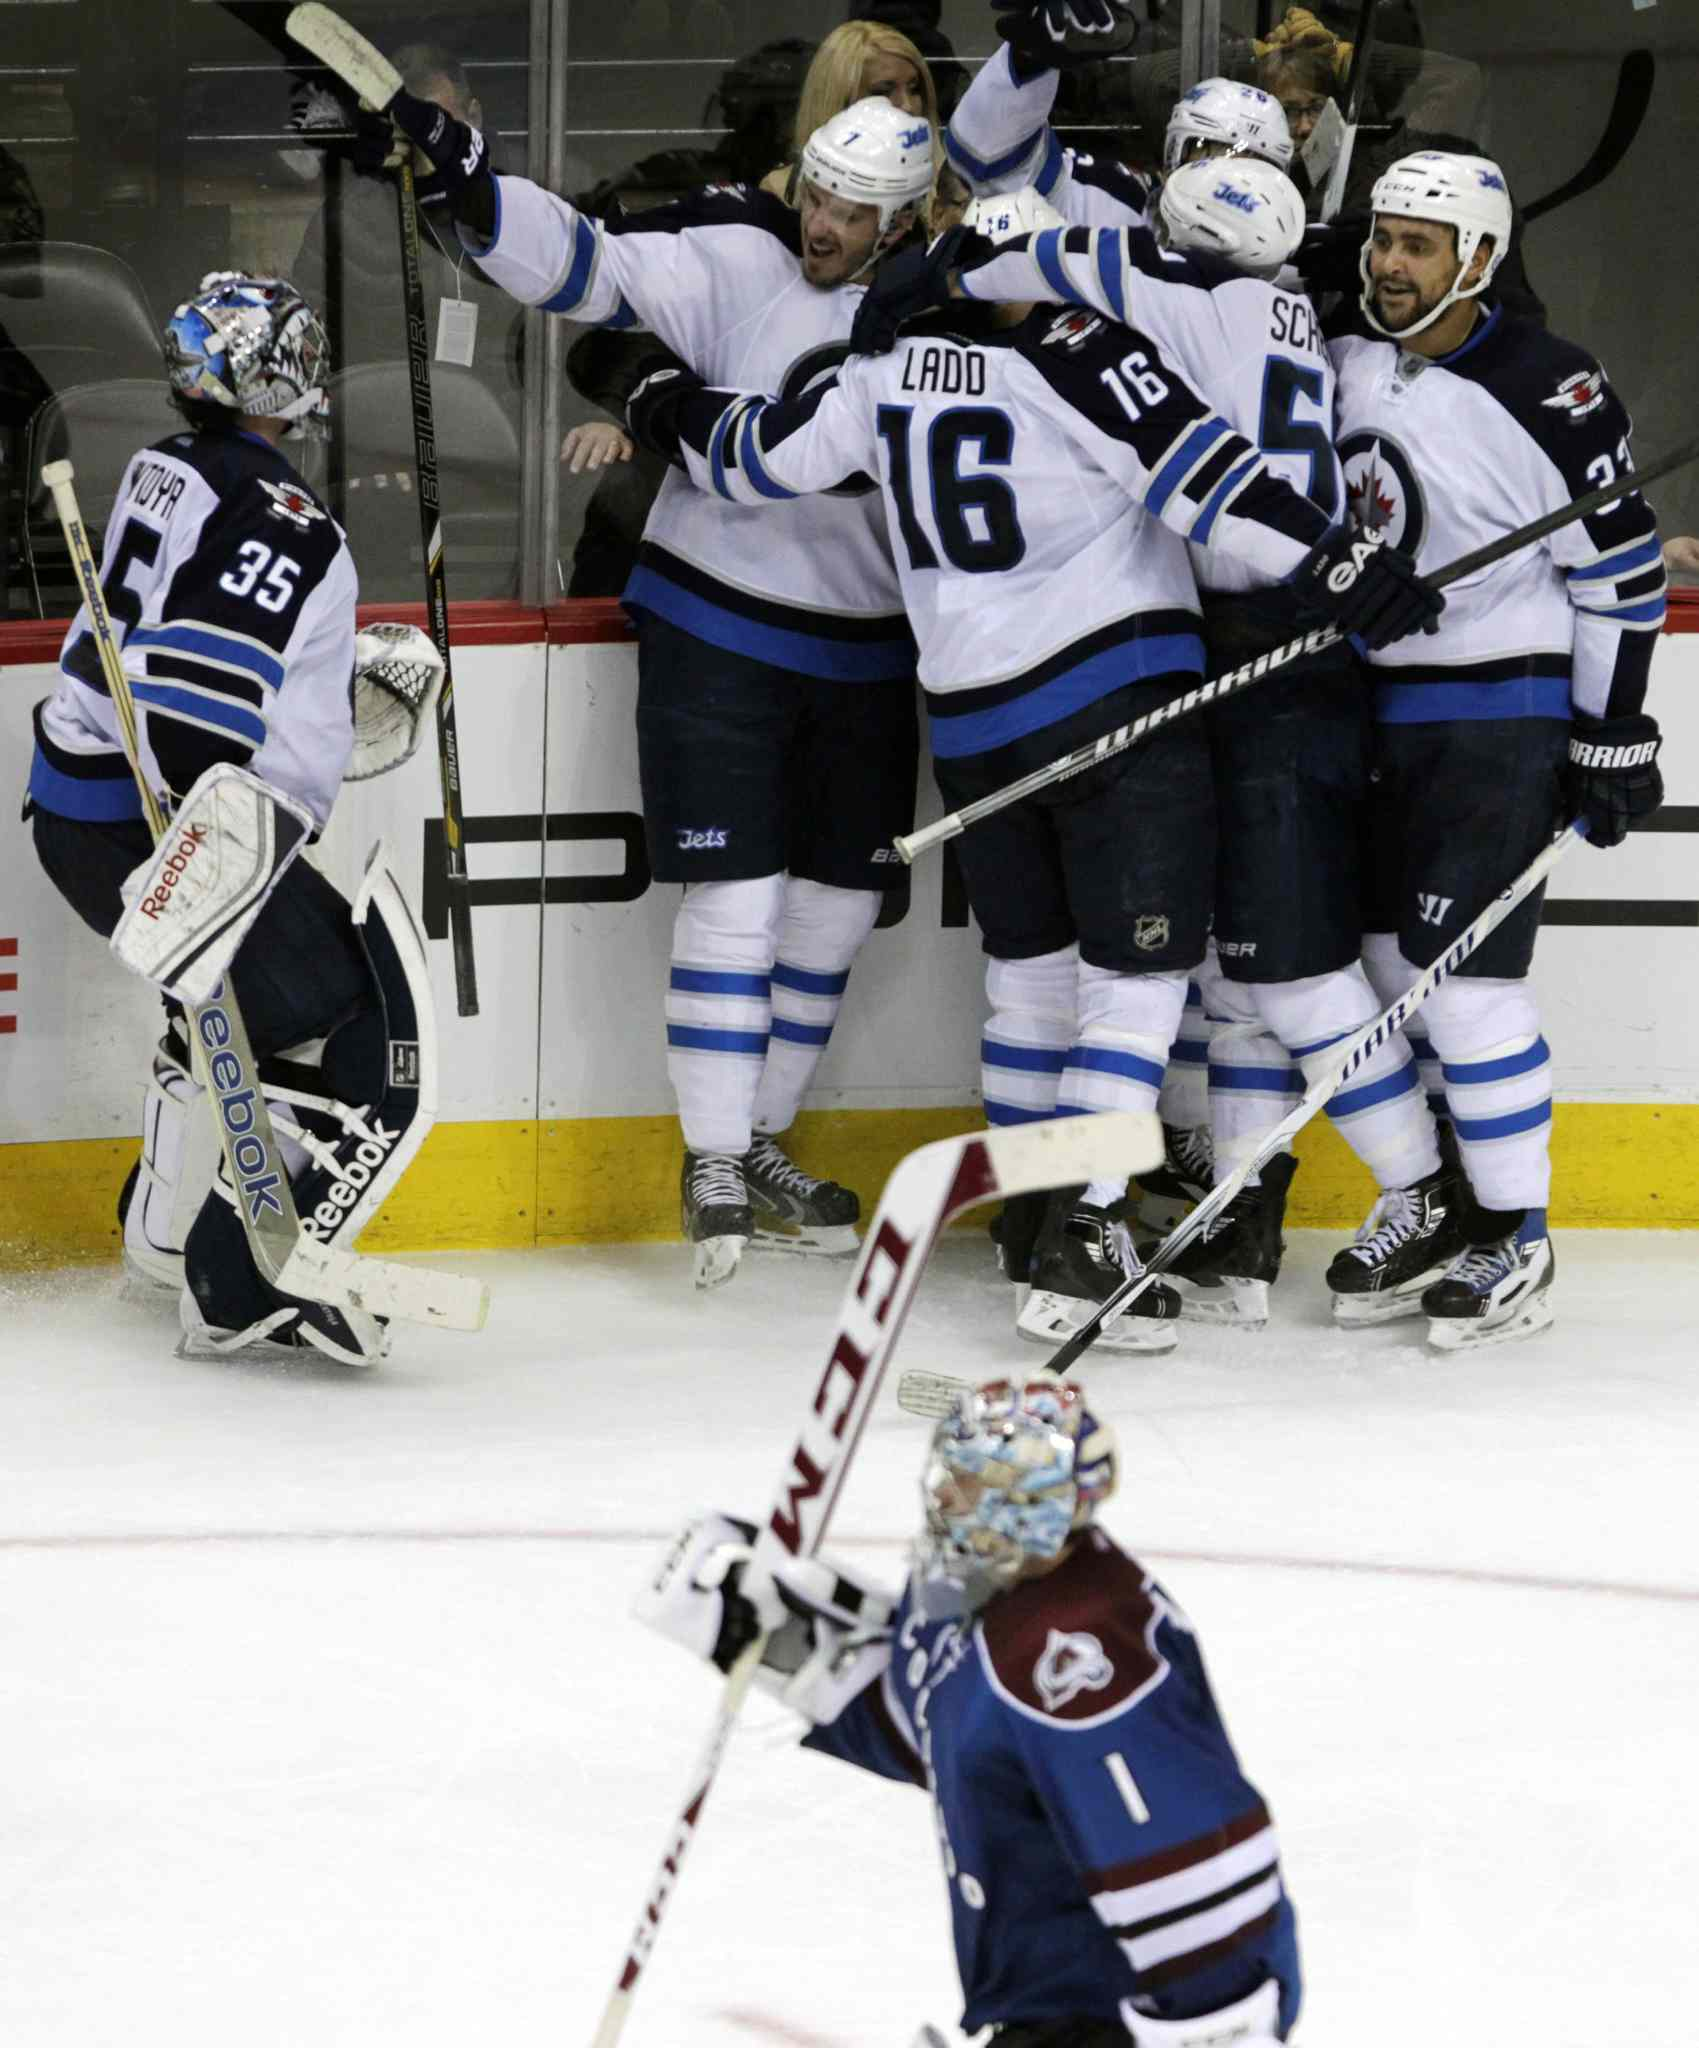 Winnipeg Jets goalie Al Montoya (left) skates toward his teammates to celebrate the team's overtime victory as Avalanche goalie Semyon Varlamov (bottom) skates to the bench.